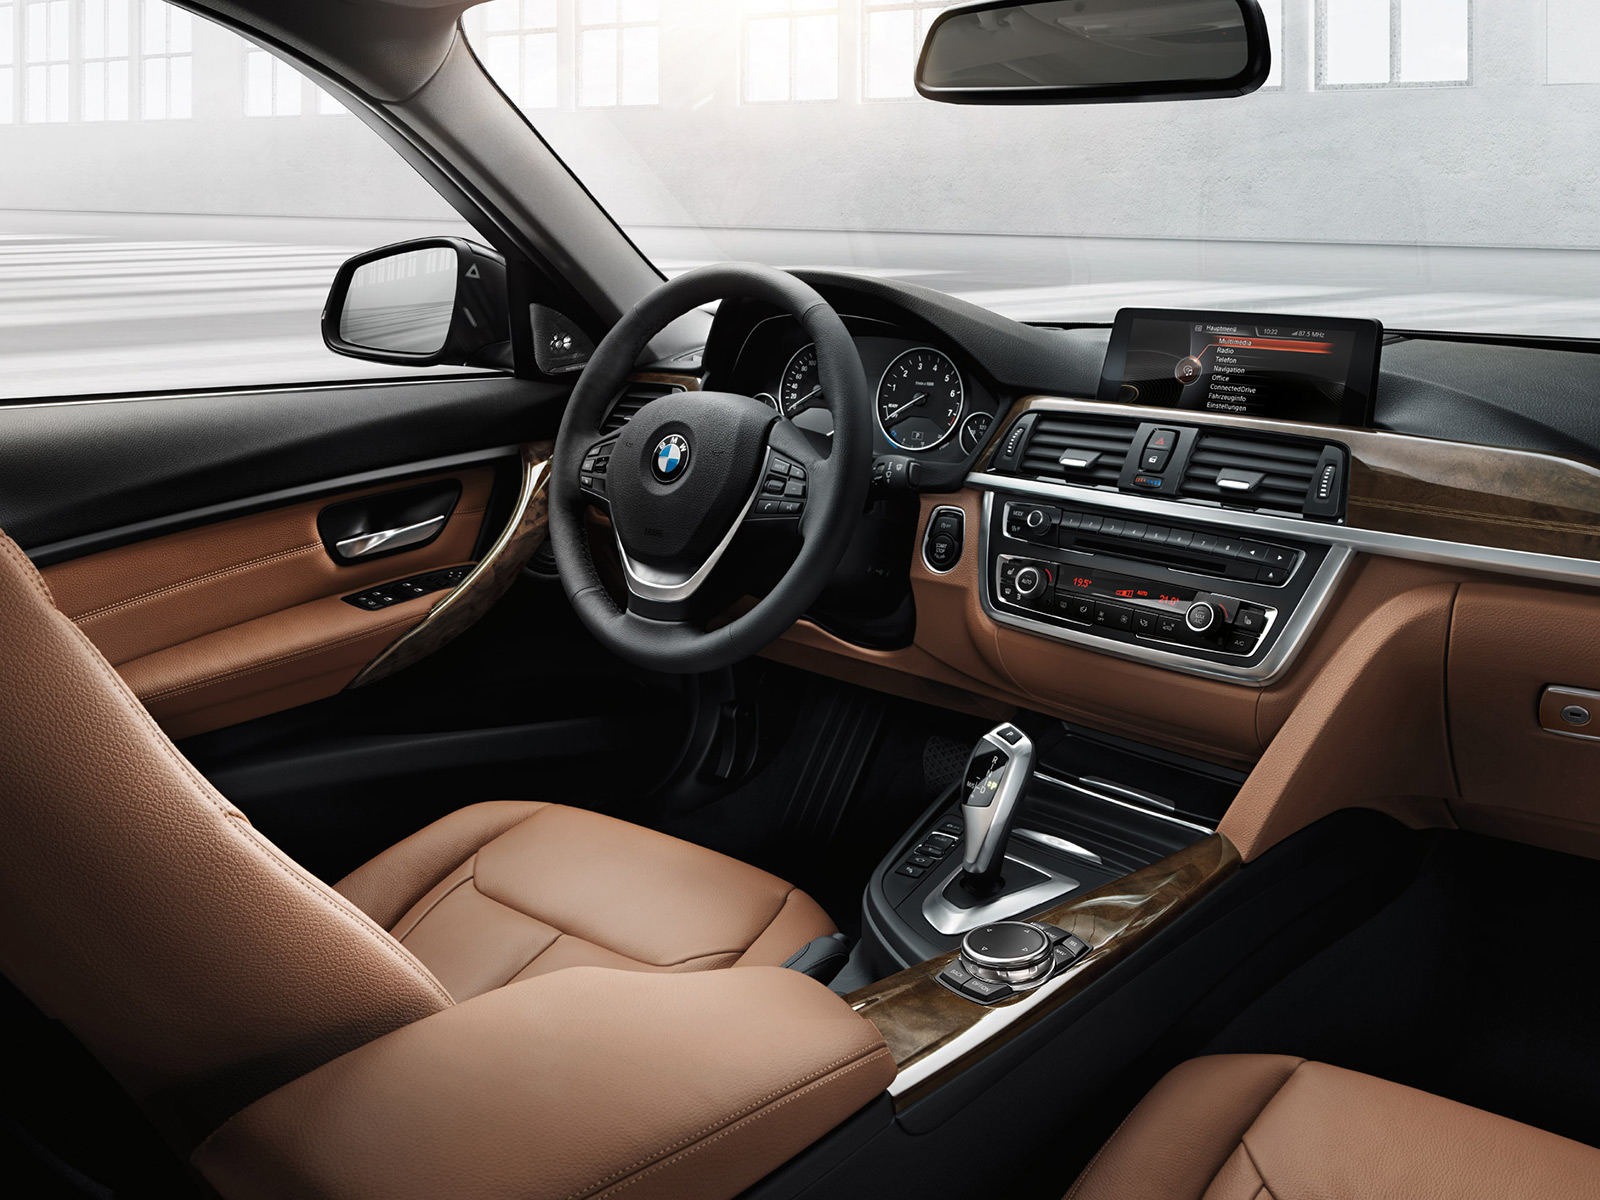 BMW_3series_wallpaper_08_1600